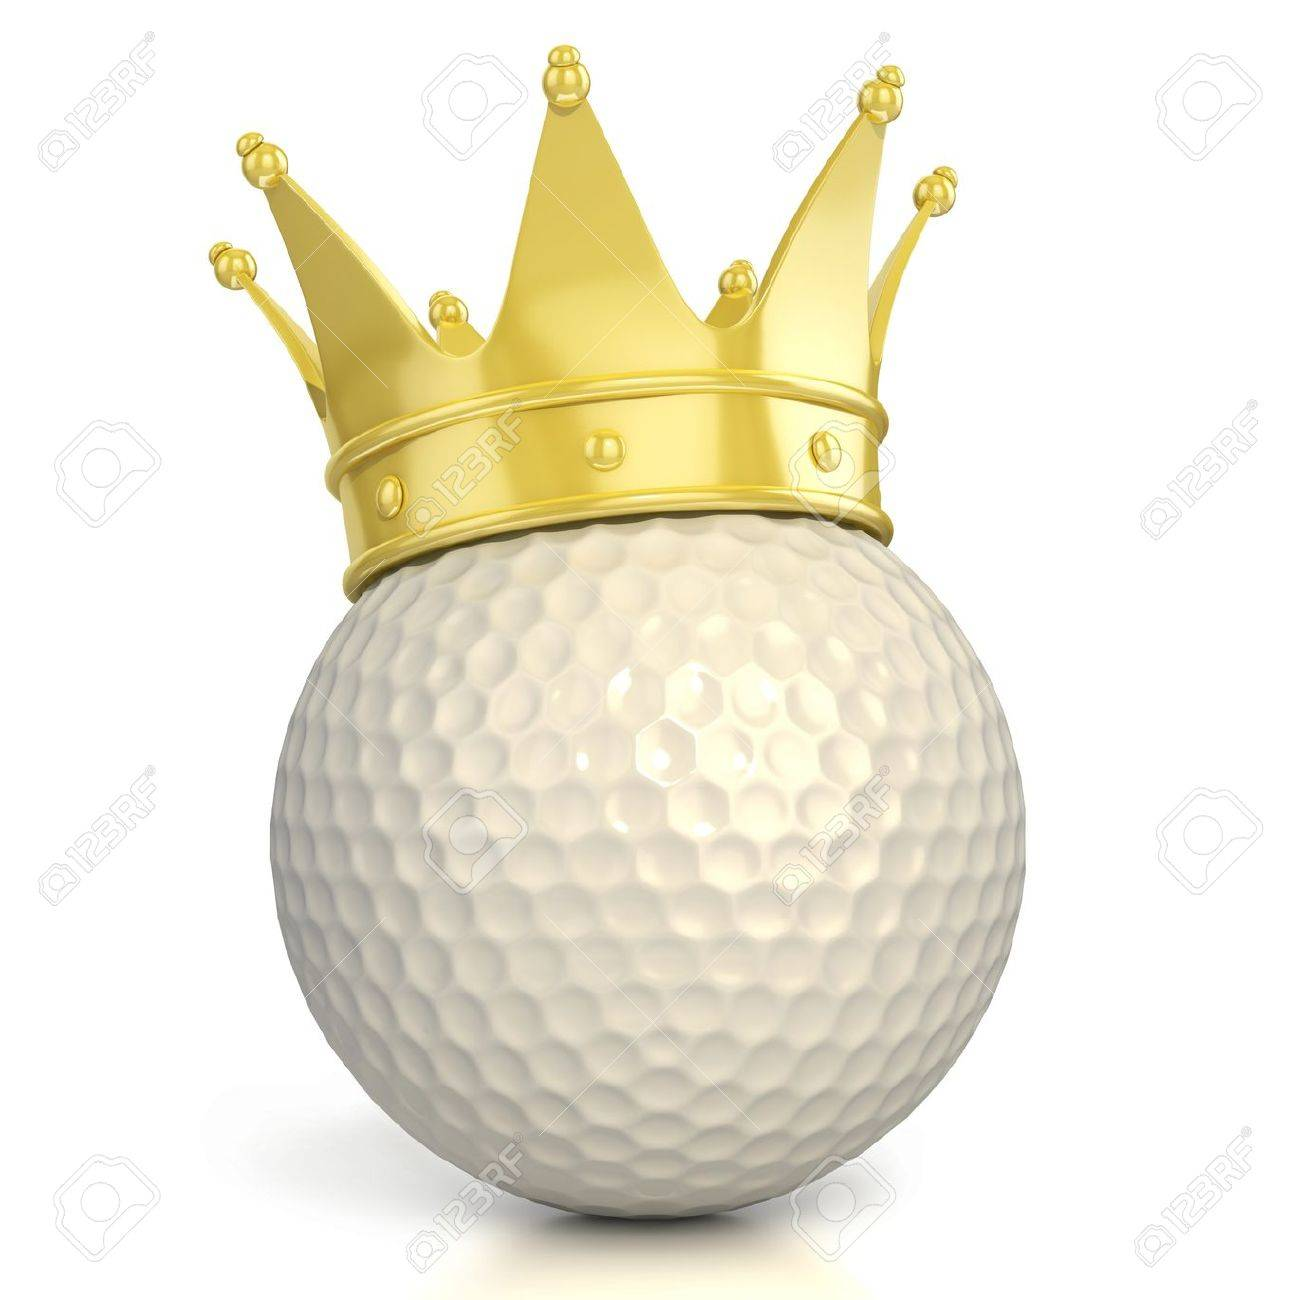 golf ball with golden crown isolated over white background Stock Photo - 12557655